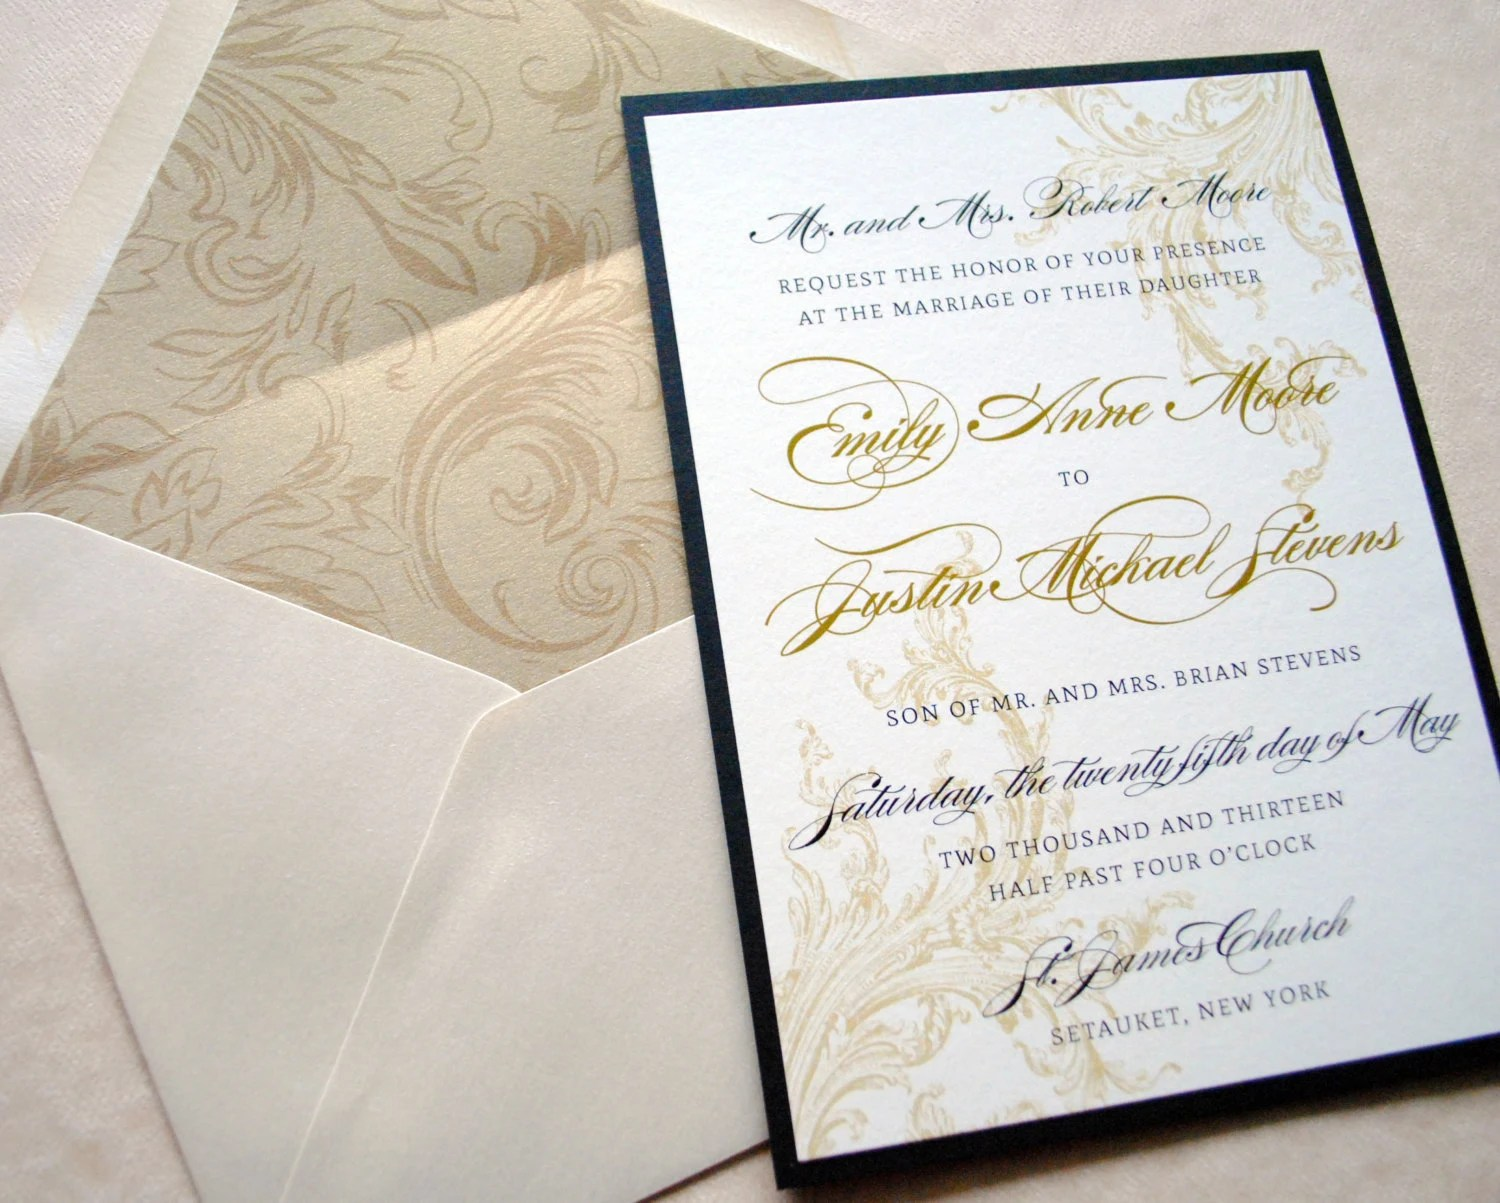 gold and black wedding invitations gold wedding invitations Wedding Invitations Black and Gold zoom